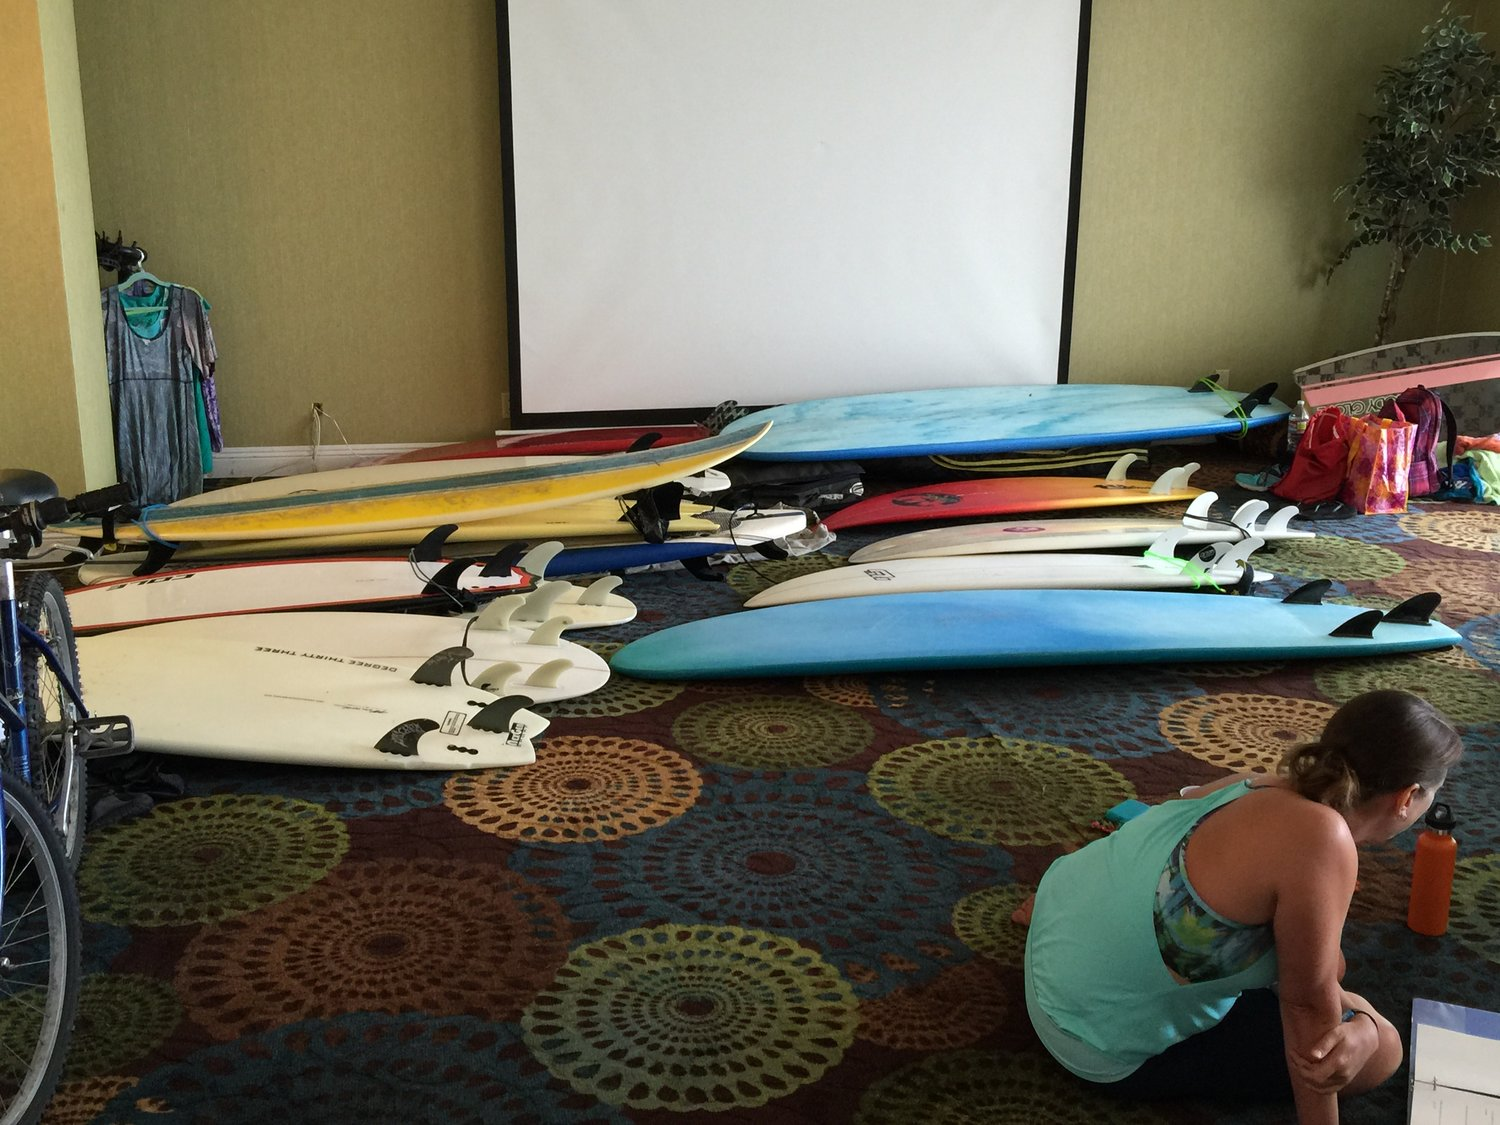 you'll have plenty of boards to borrow and try for a new experience!